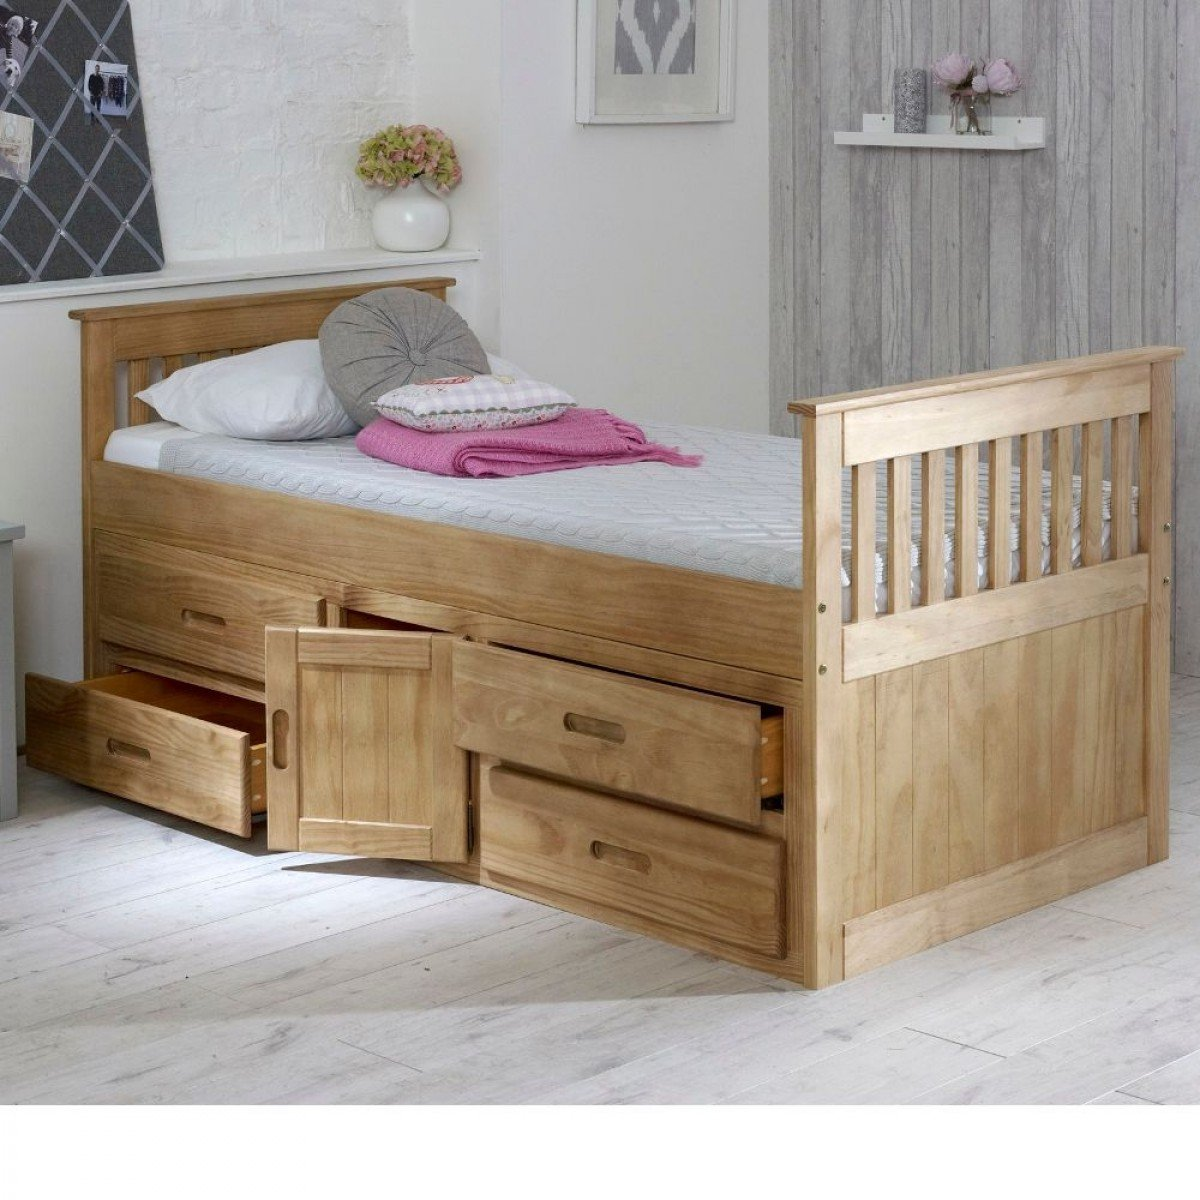 Captains Waxed Pine Wooden Storage Bed